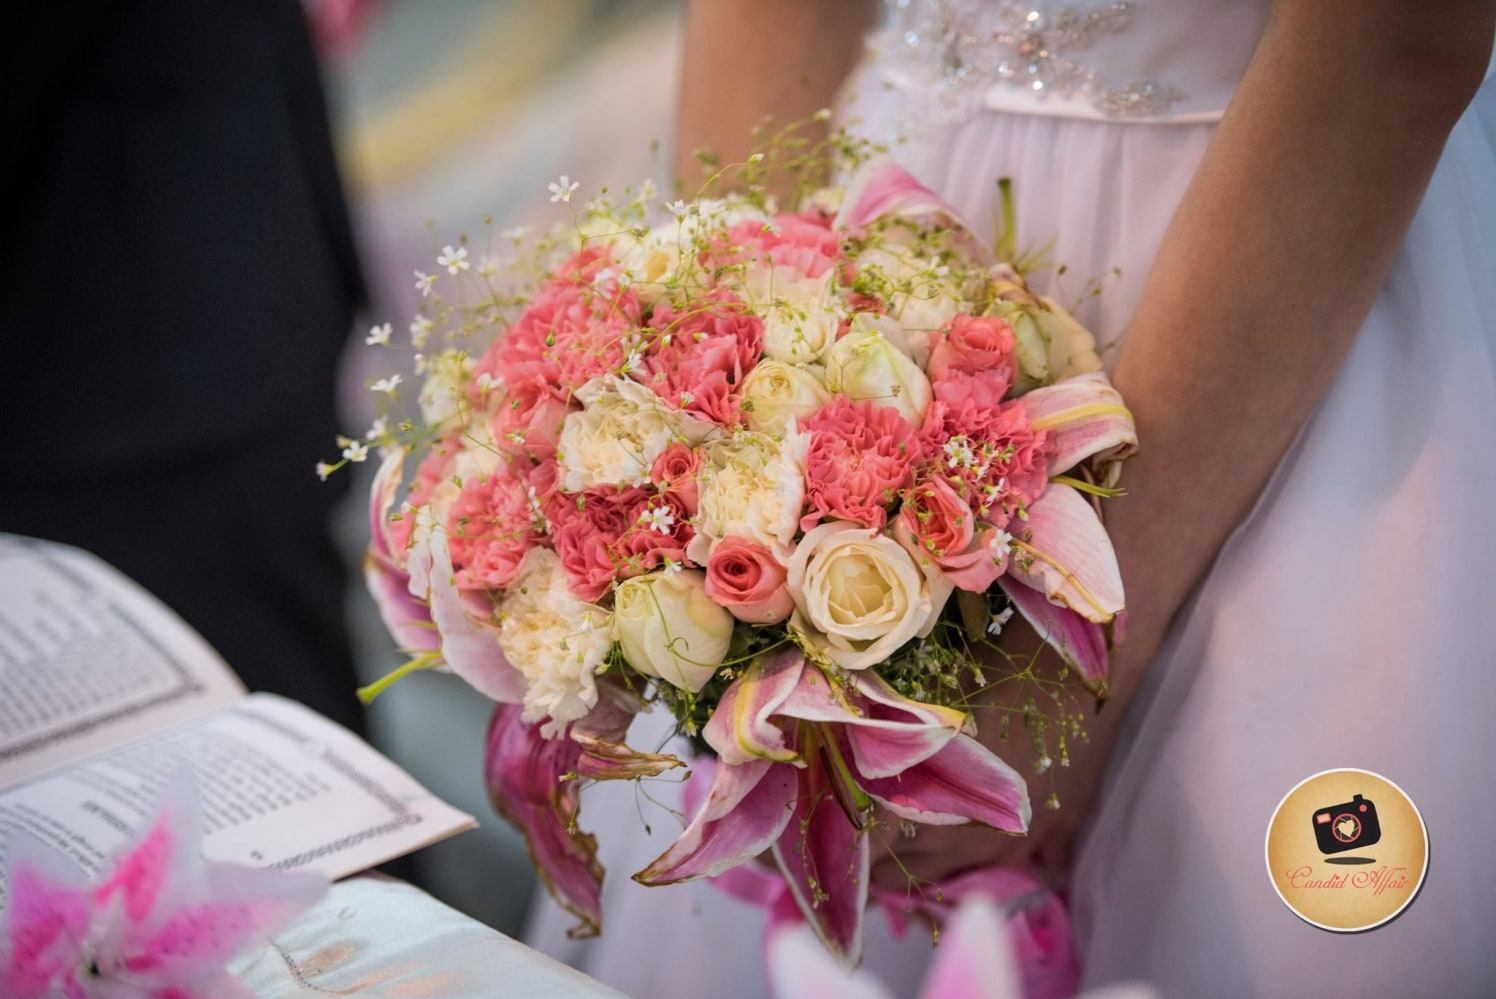 A Stunning Bouquet For The Christian Bride by Candid Affair Wedding-photography | Weddings Photos & Ideas